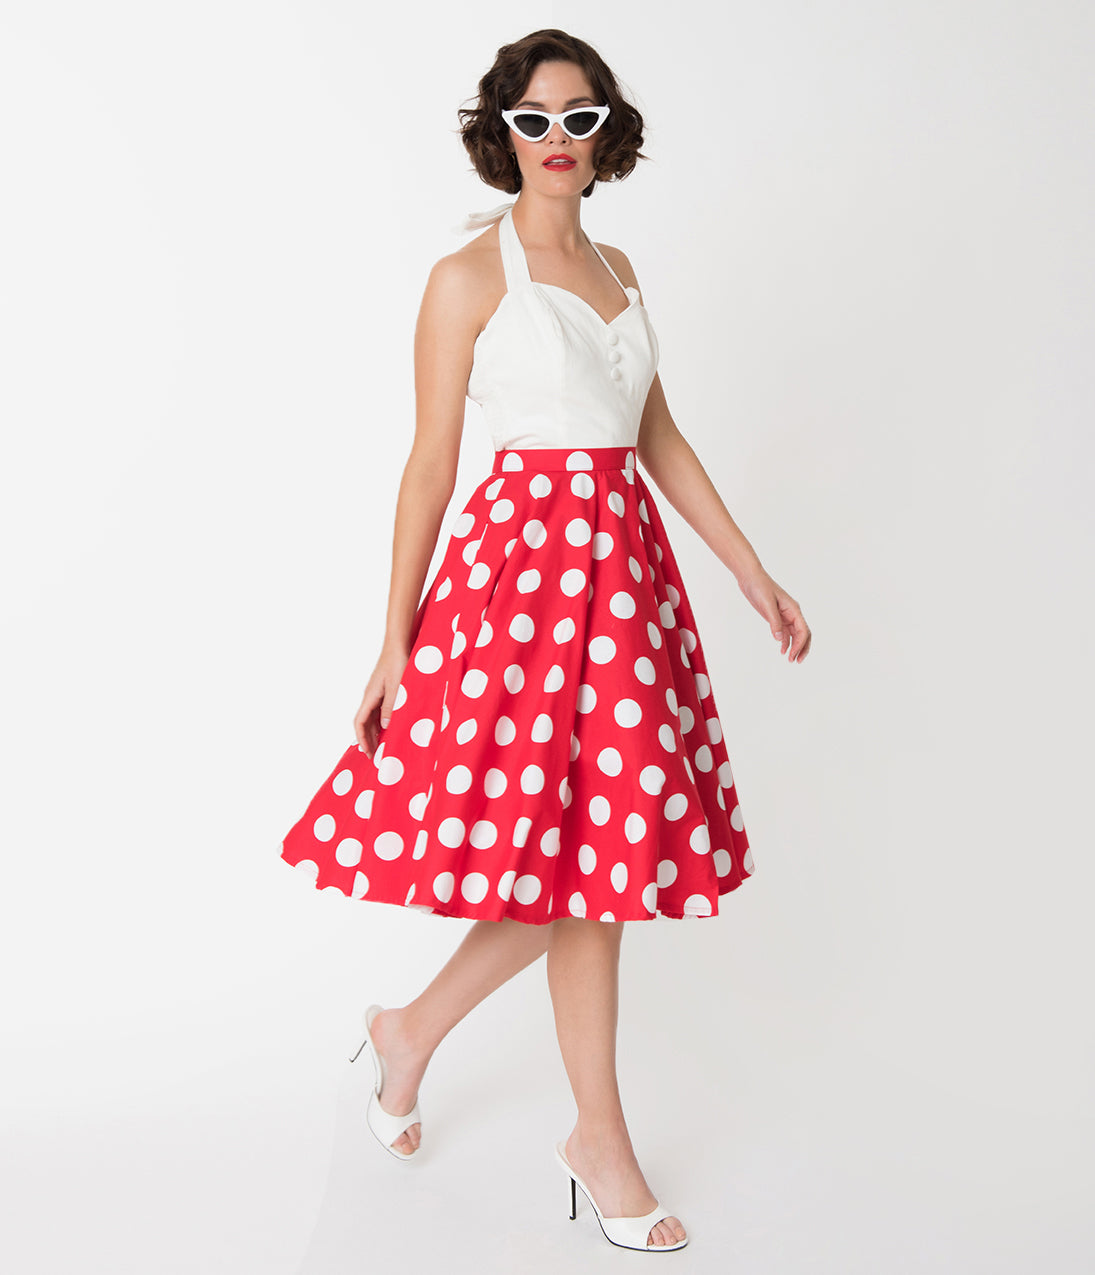 1950s Swing Skirt, Poodle Skirt, Pencil Skirts Vintage Style Red  White Polka Dot Cotton Circle Skirt $42.00 AT vintagedancer.com